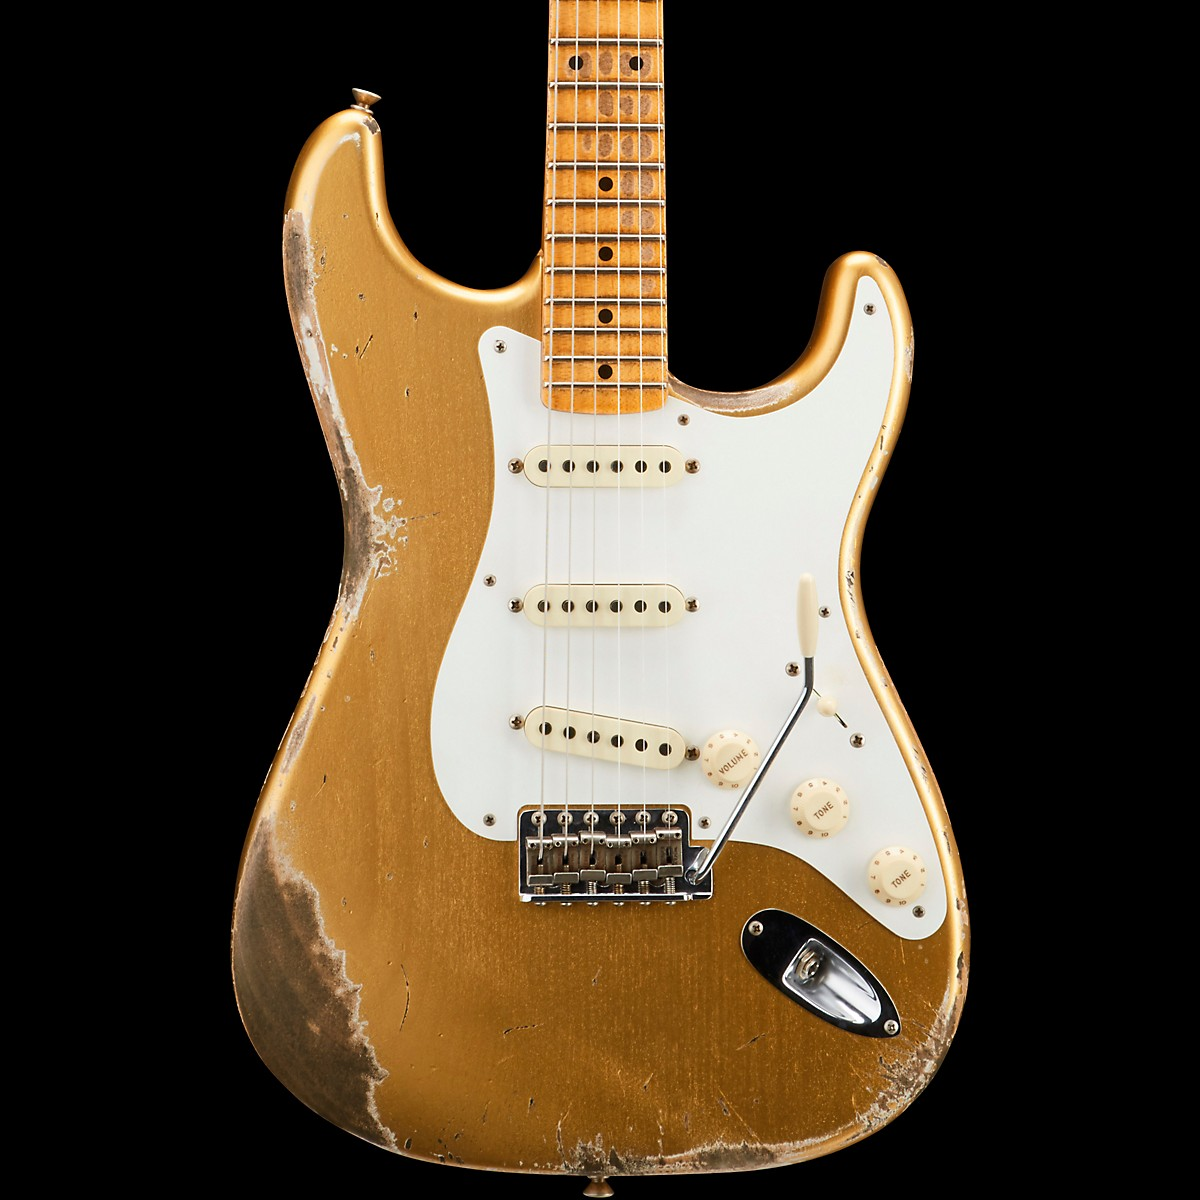 Fender Custom Shop 1958 Heavy Relic Stratocaster 2018 NAMM Limited Edition Electric Guitar